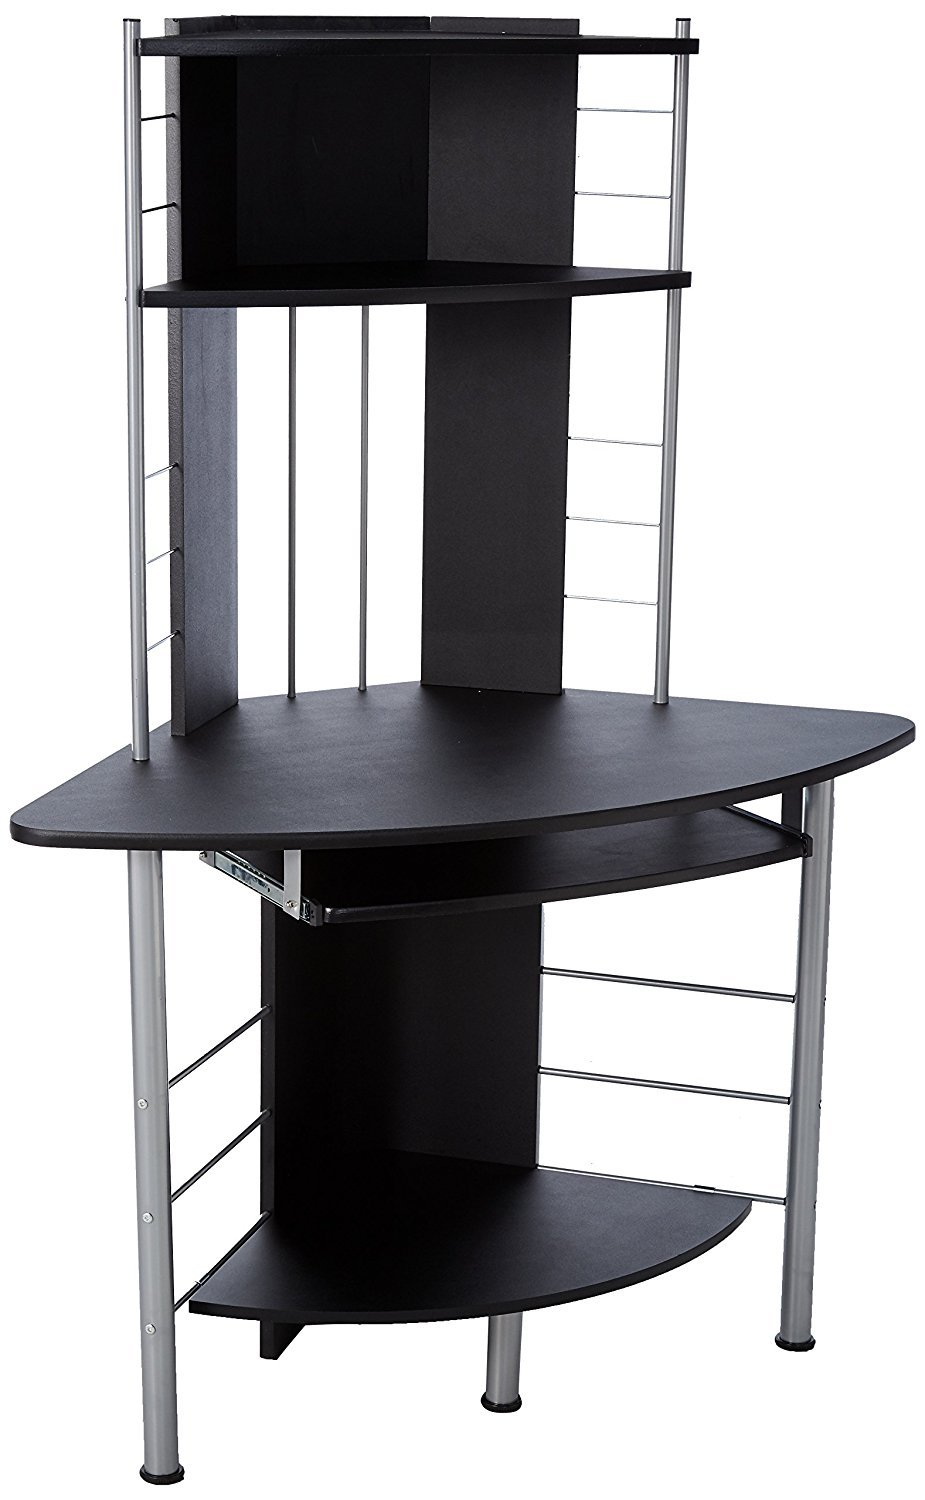 HomCom 45'' Arch Tower Compact Modern Corner Computer Workstation Desk With Keyboard Tray And Shelves - Black by HOMCOM